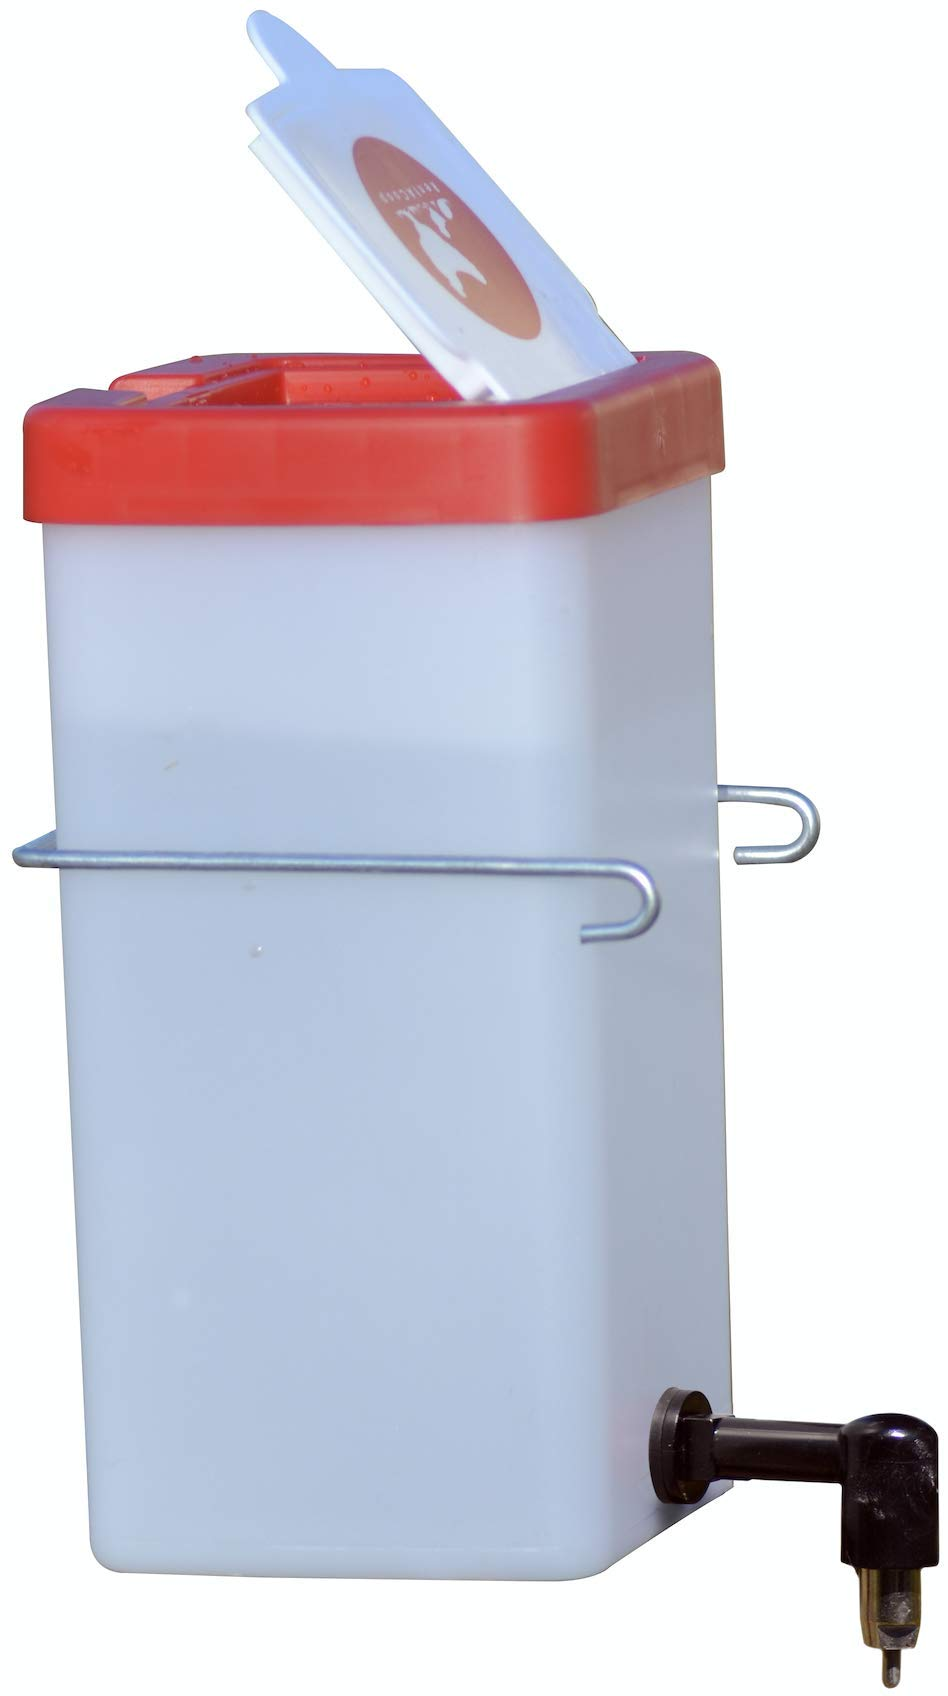 32 oz No Drip Small Animal Water Bottle. BPA Free. Best Water Bottle for Small Pet/Bunny/Ferret/Hamster/Guinea Pig/Rabbit. Red or Green Lid Randomly by RentACoop